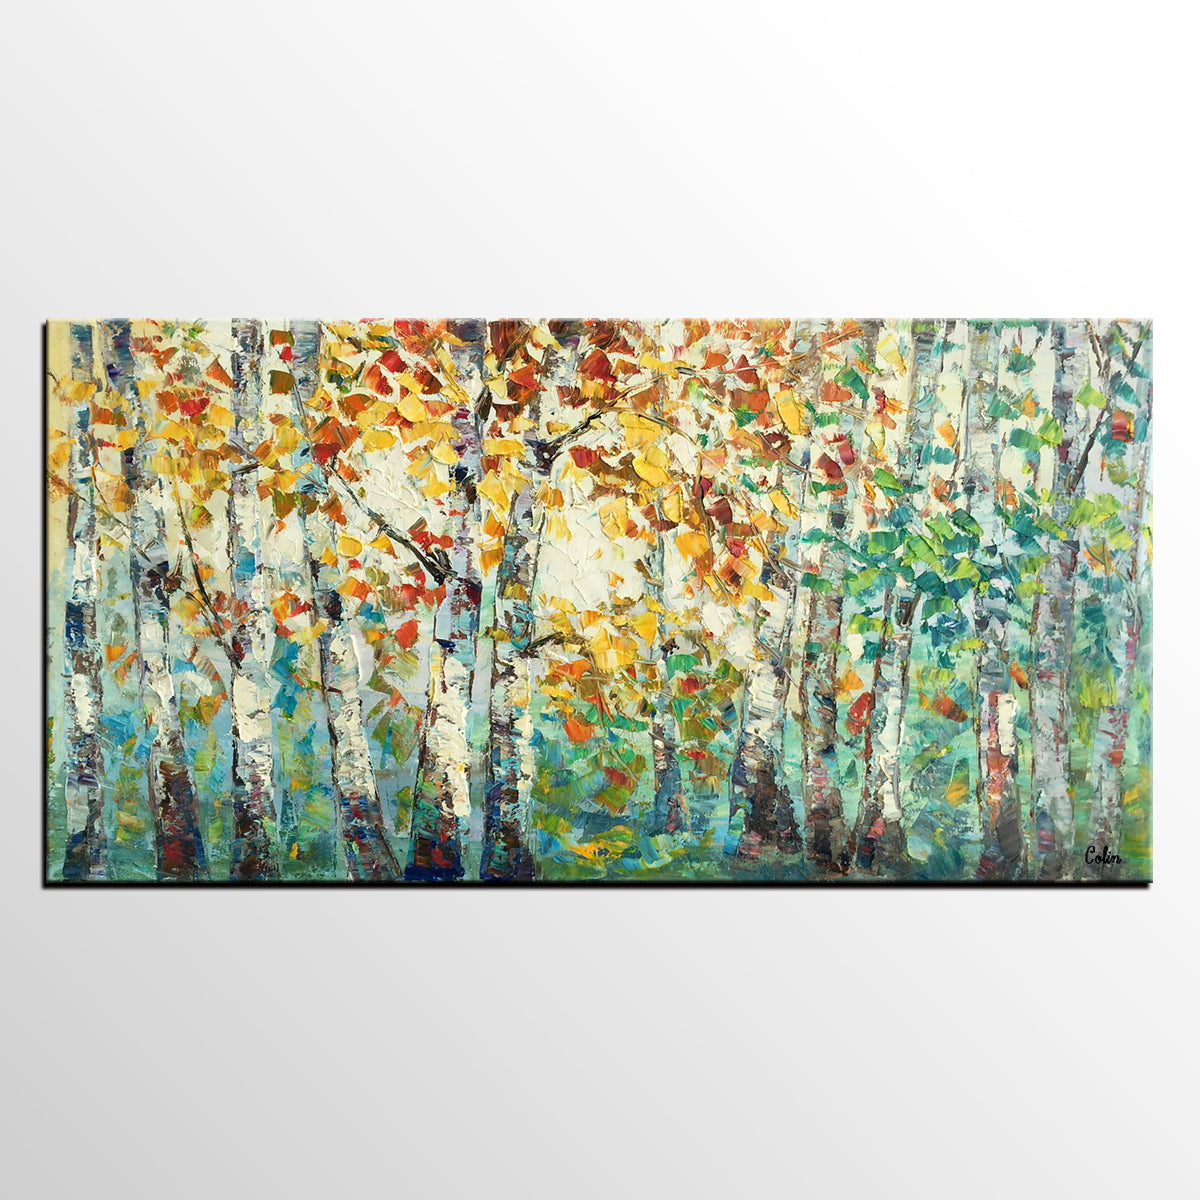 Abstract Art for Sale, Autumn Tree Landscap...